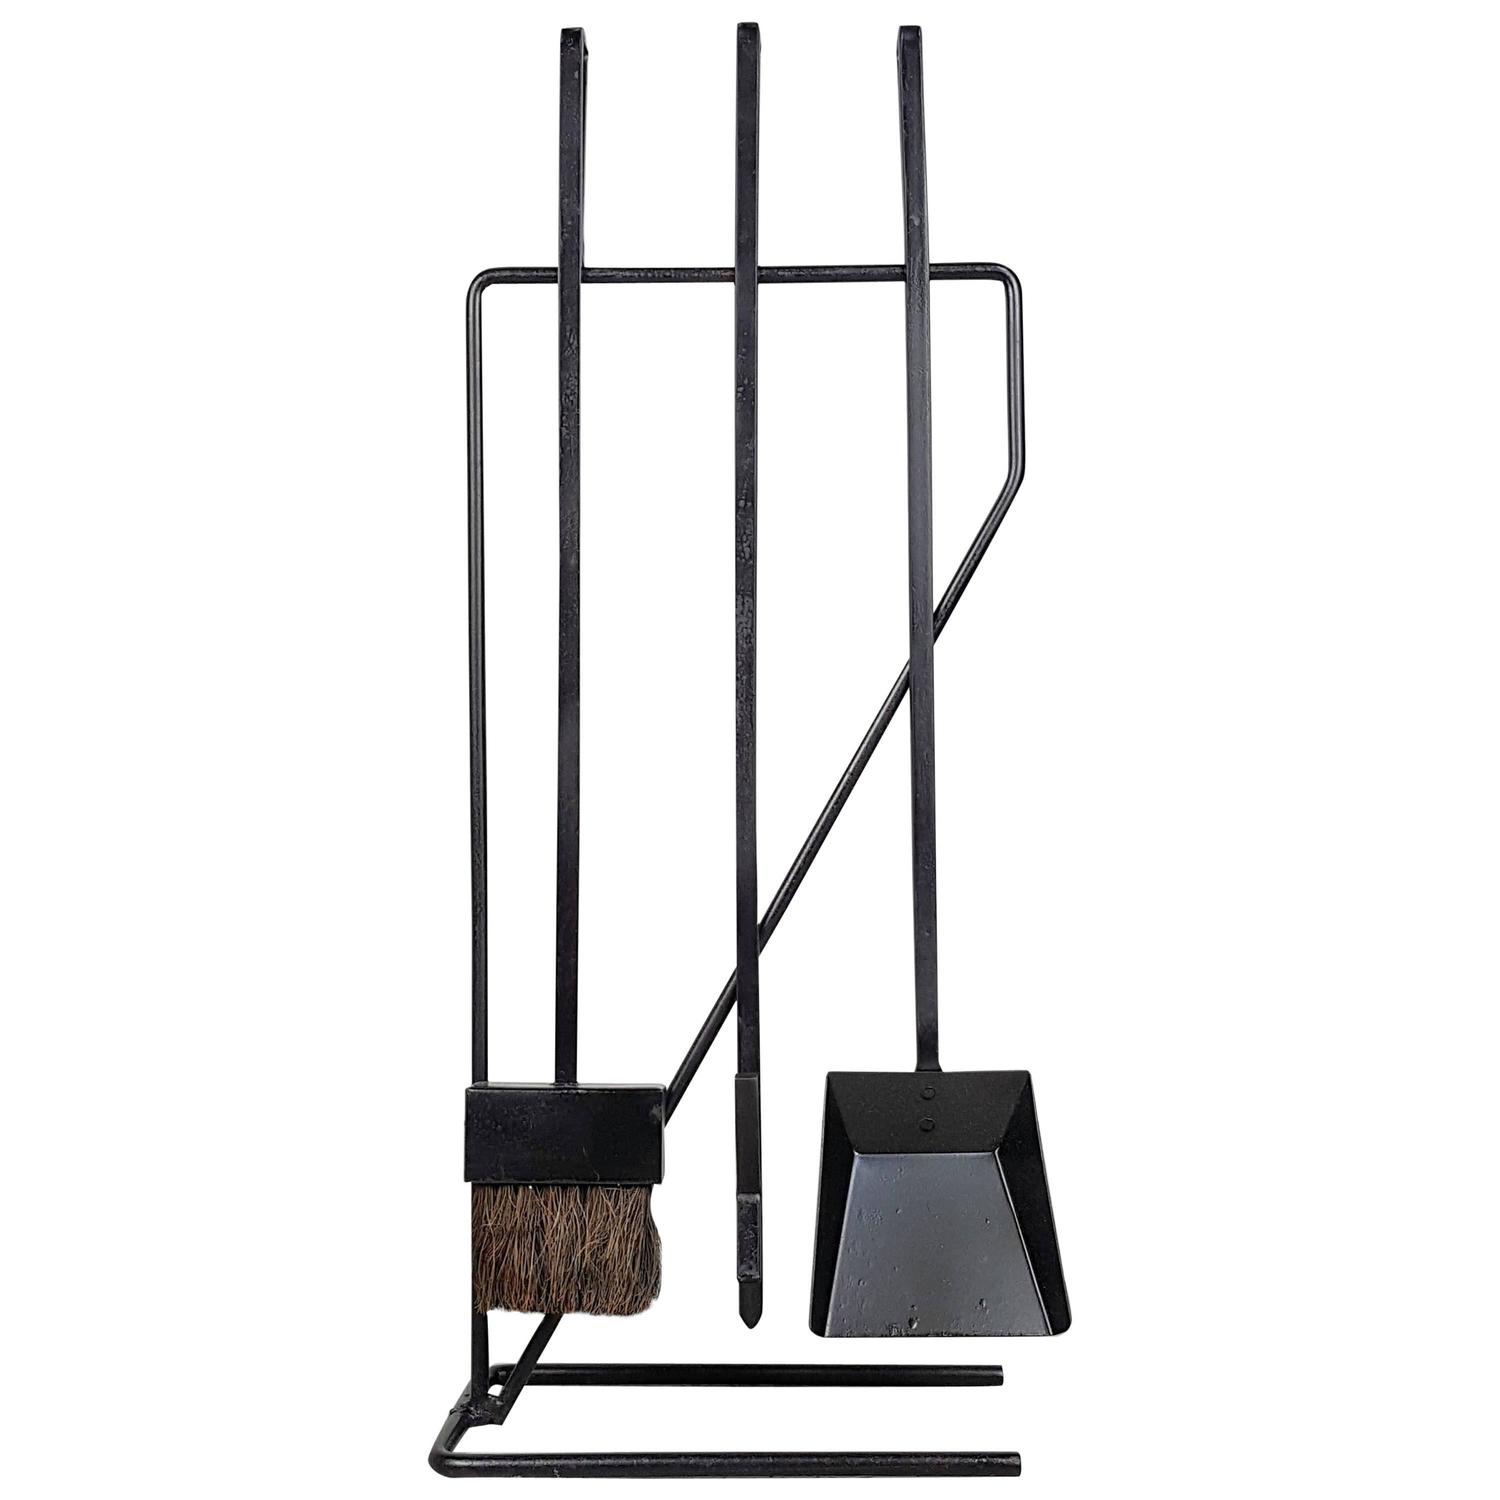 Chic wrought iron fireplace tools pine firelace tool for your home interior tool improvements